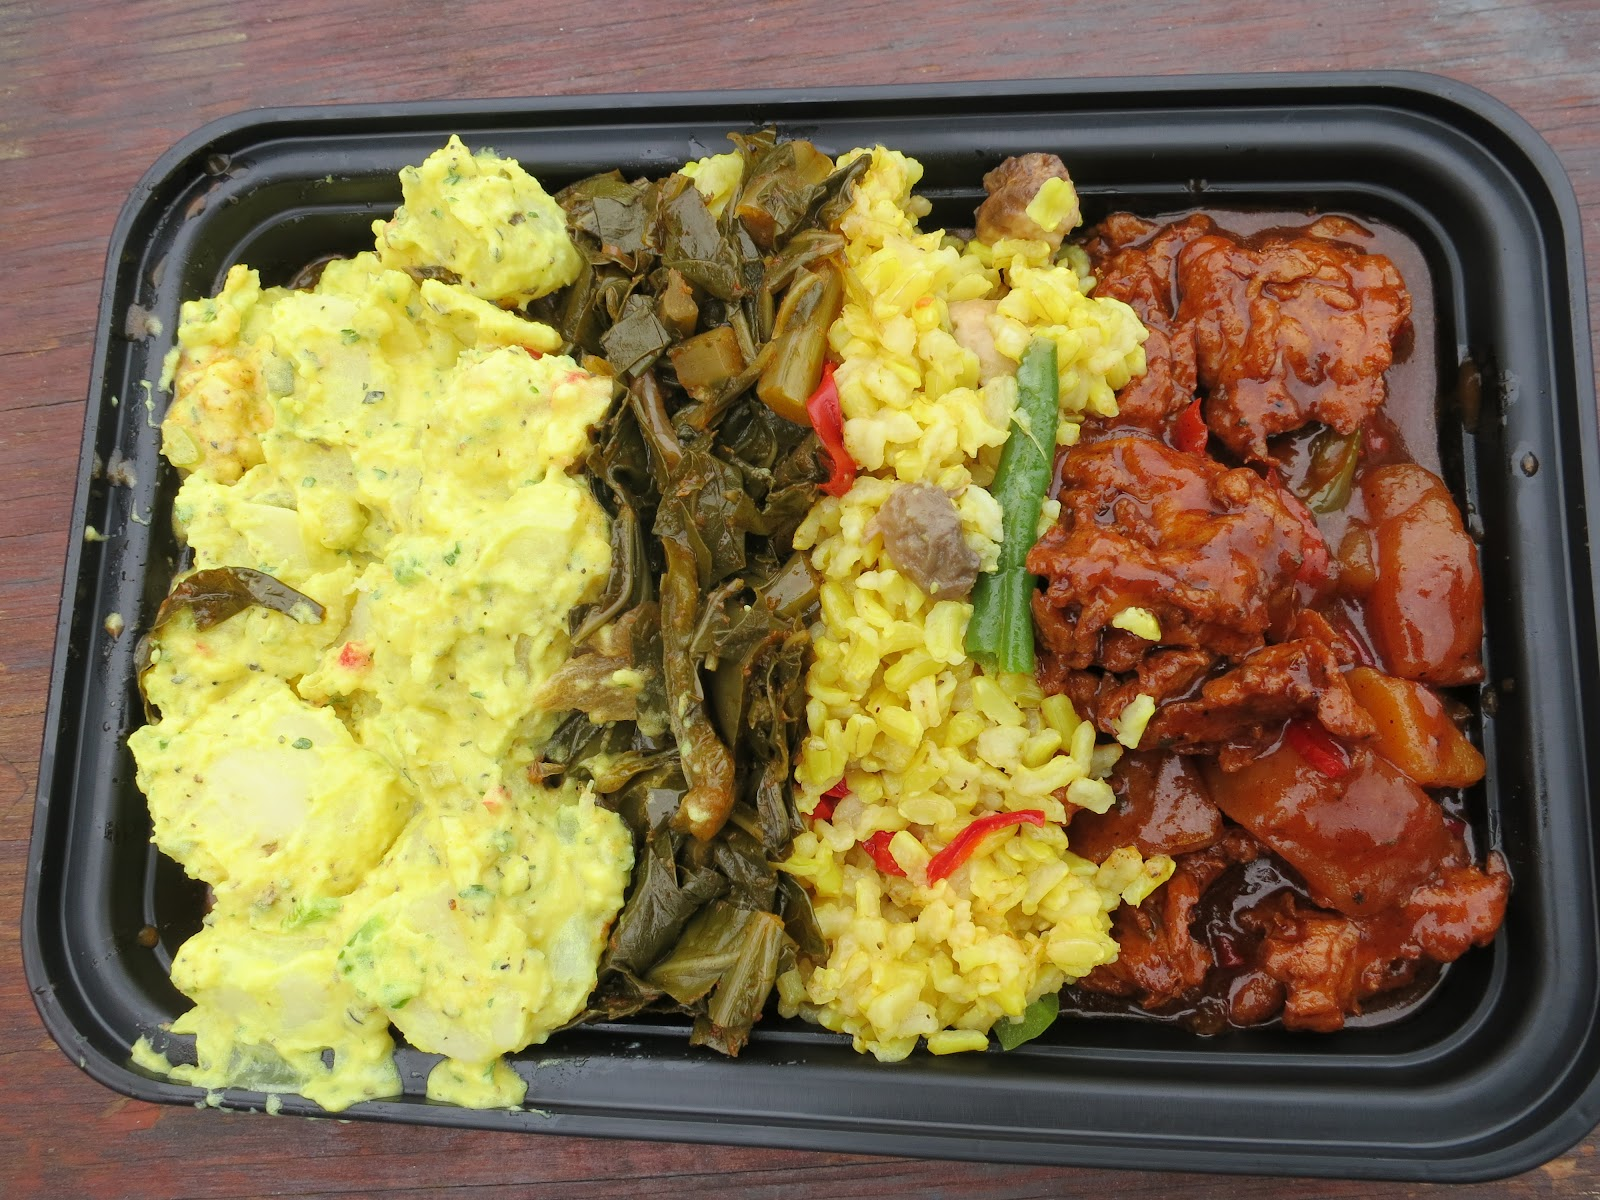 The veracious vegan vegfest baltimore 2012 kushs booth and got the sampler platter that included rice soy ribs collard greens and potato salad it was delicious vegan soul food at its best forumfinder Choice Image